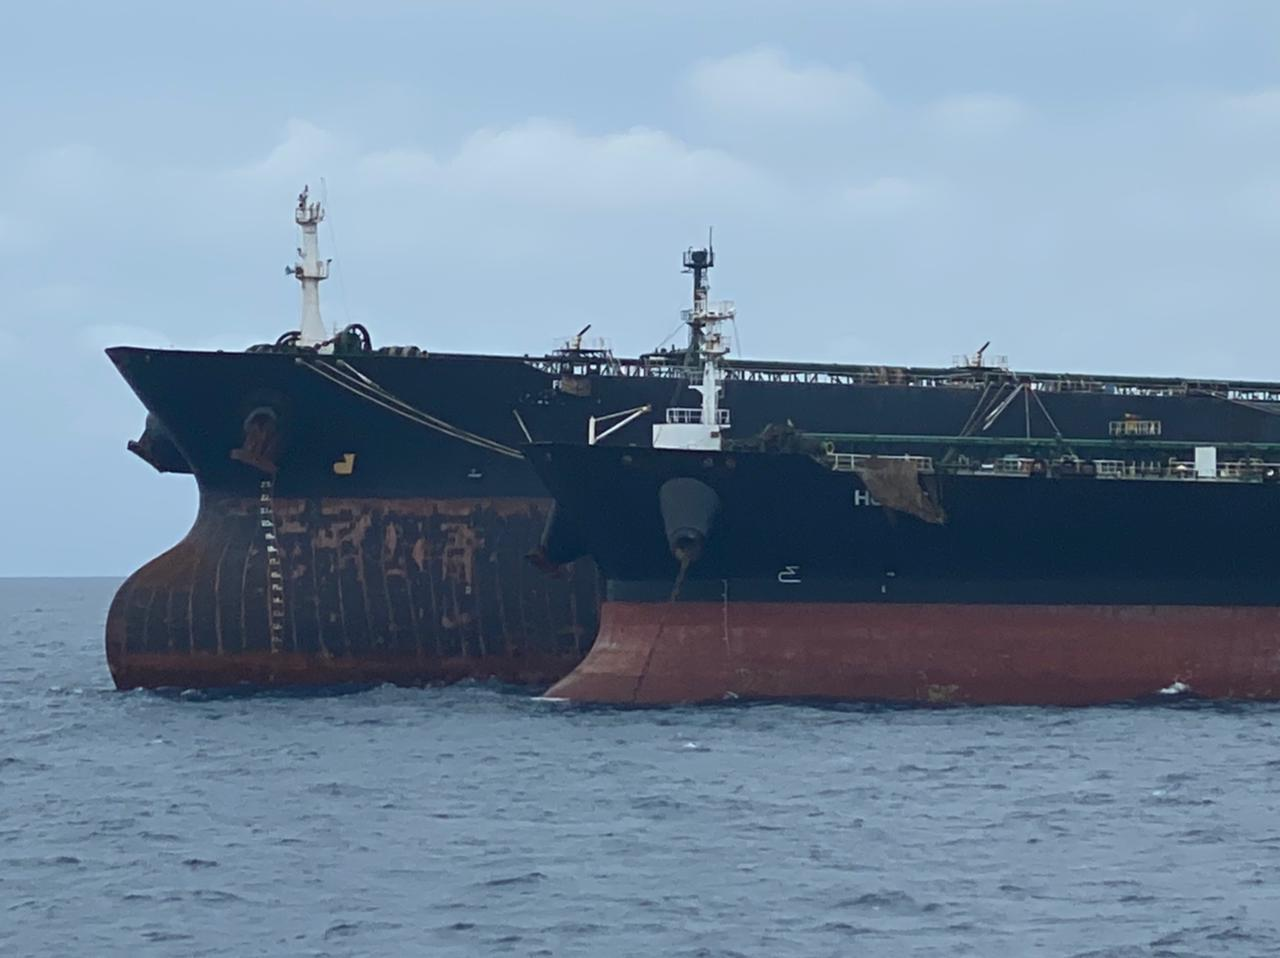 MT Horse and MT Freya detained off West Kalimantan - note the covering over the vessel name (Indonesian Coast Guard/Anadolu Agency via Getty Images)